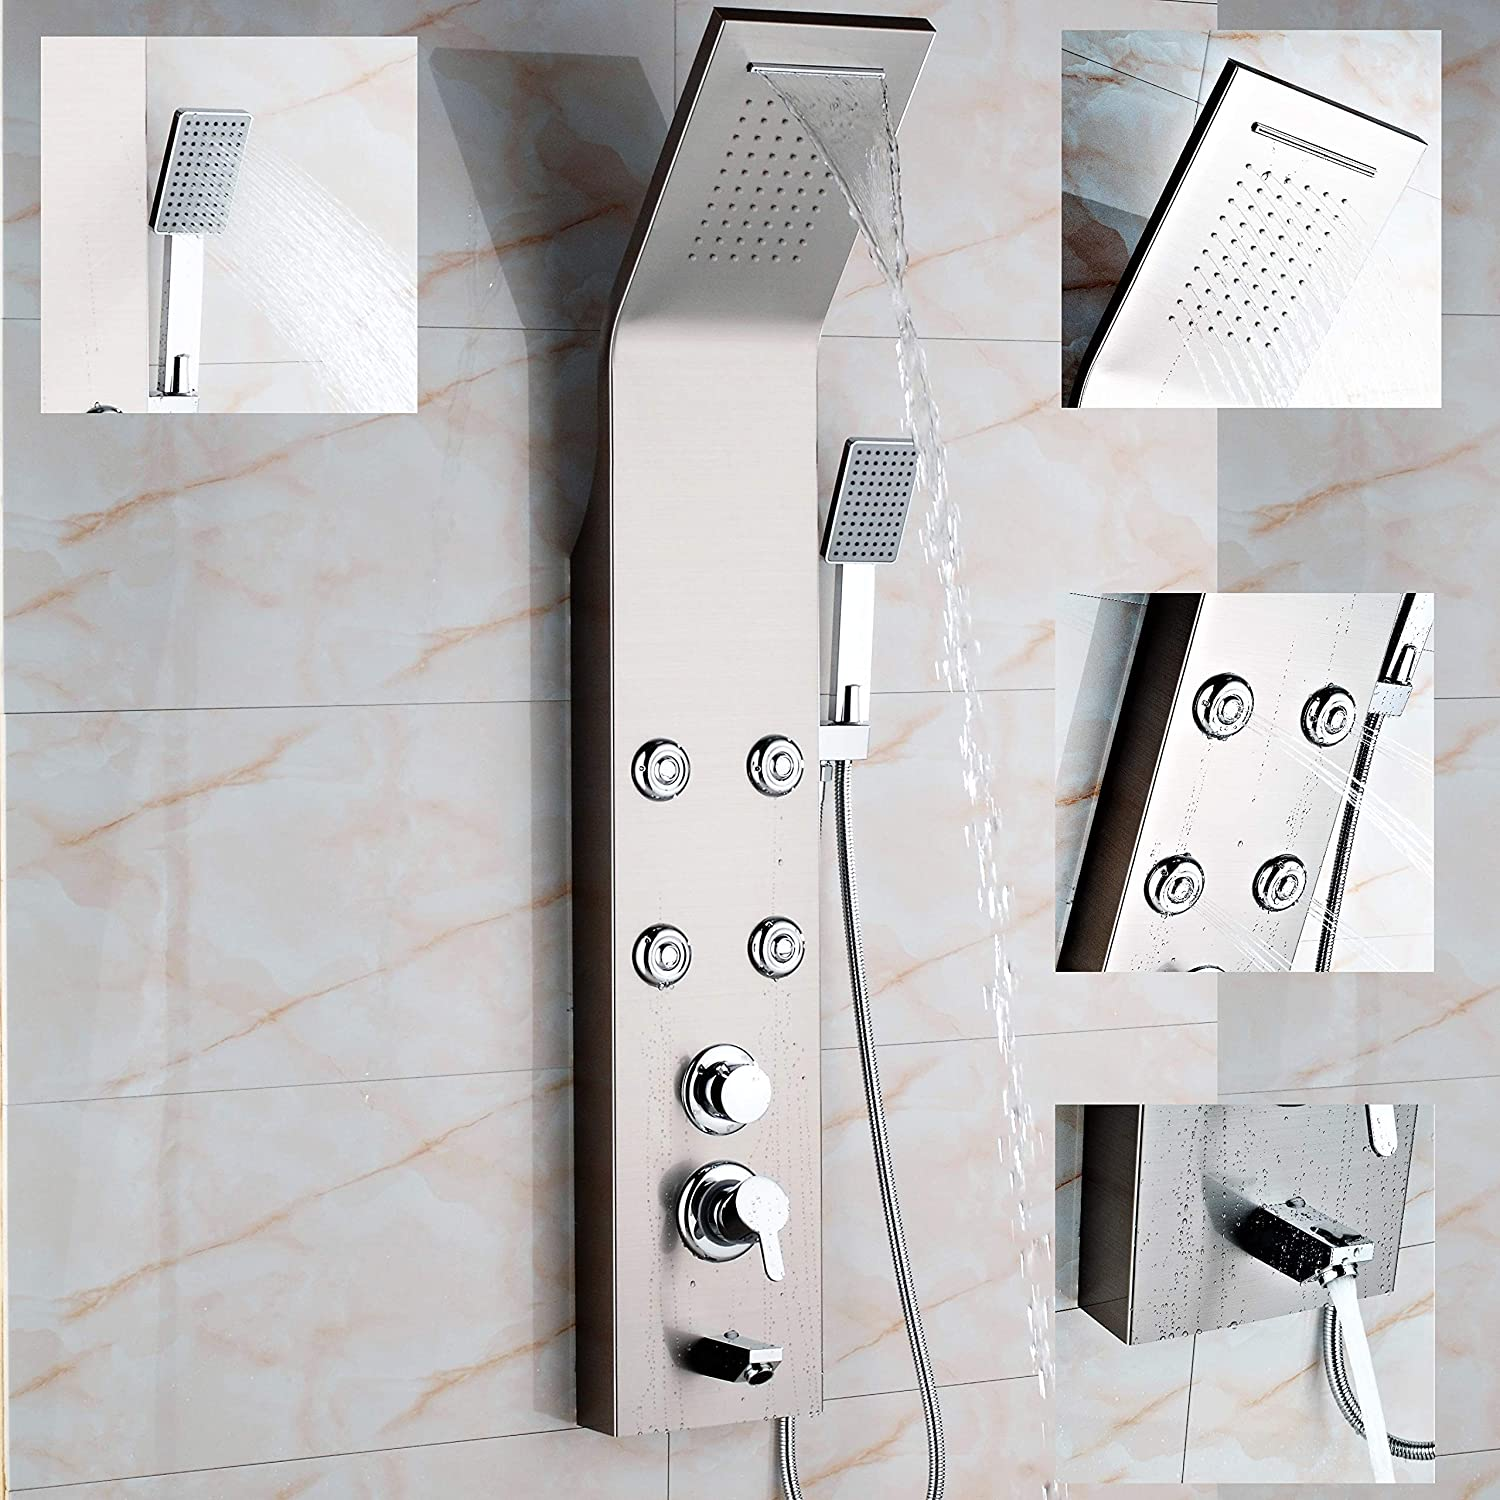 High-Quality Shower Panel Shower Set, Shower Panel with Massage Function, Colour  Brushed Nickel